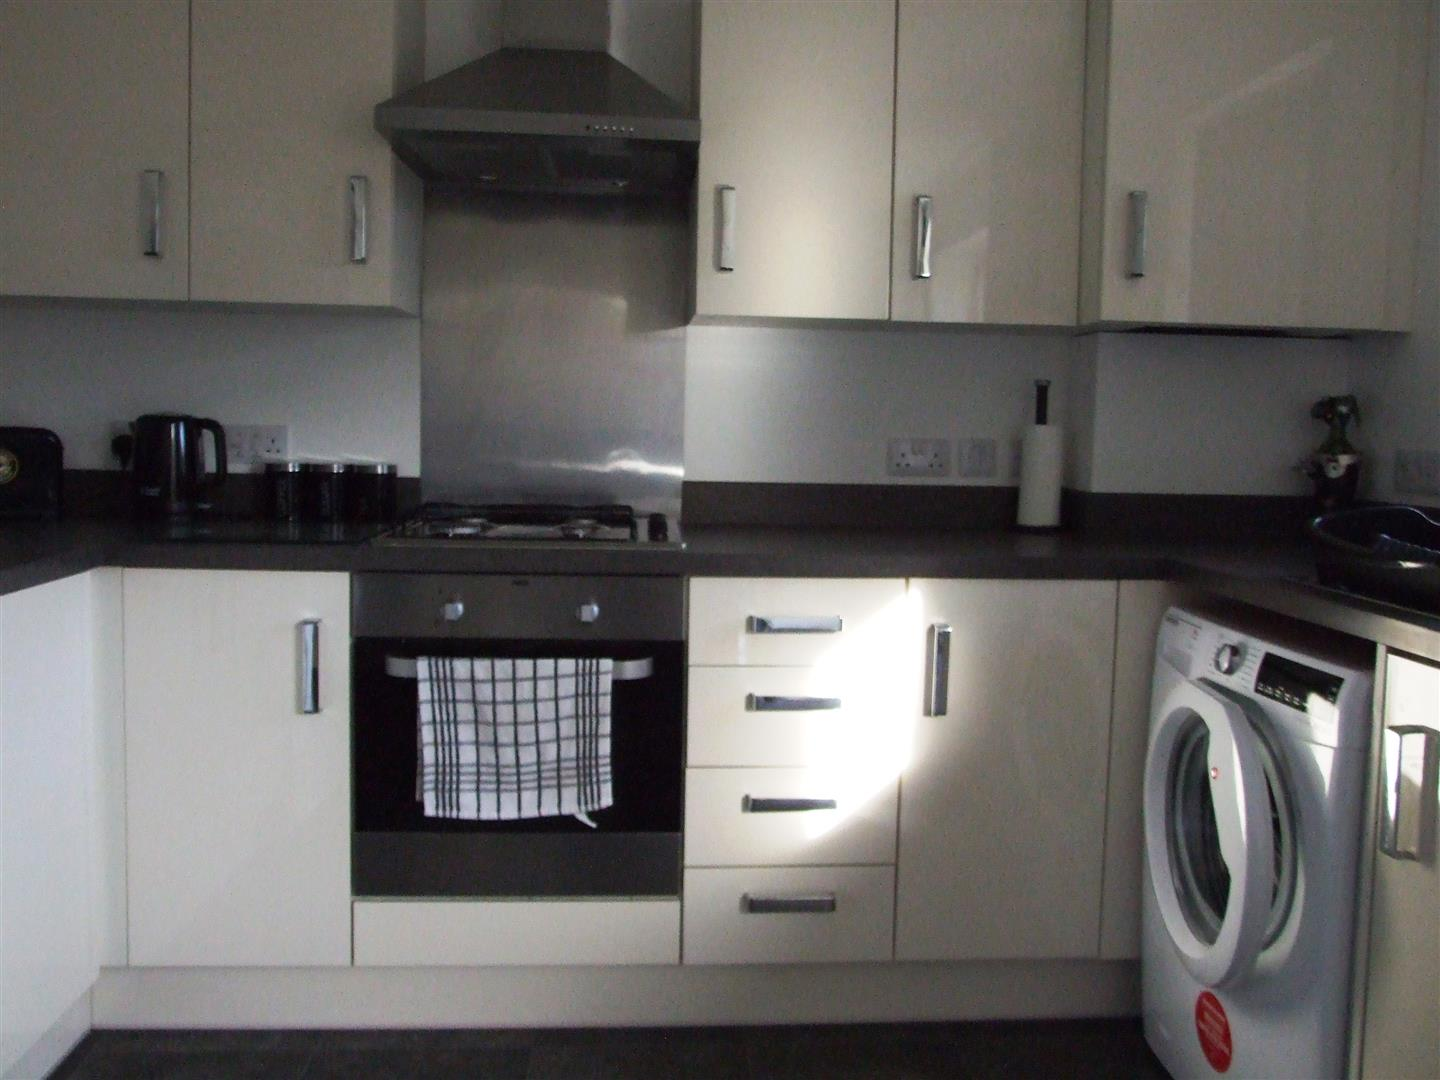 3 bed house to rent in Long Sutton, PE12 9GZ 4